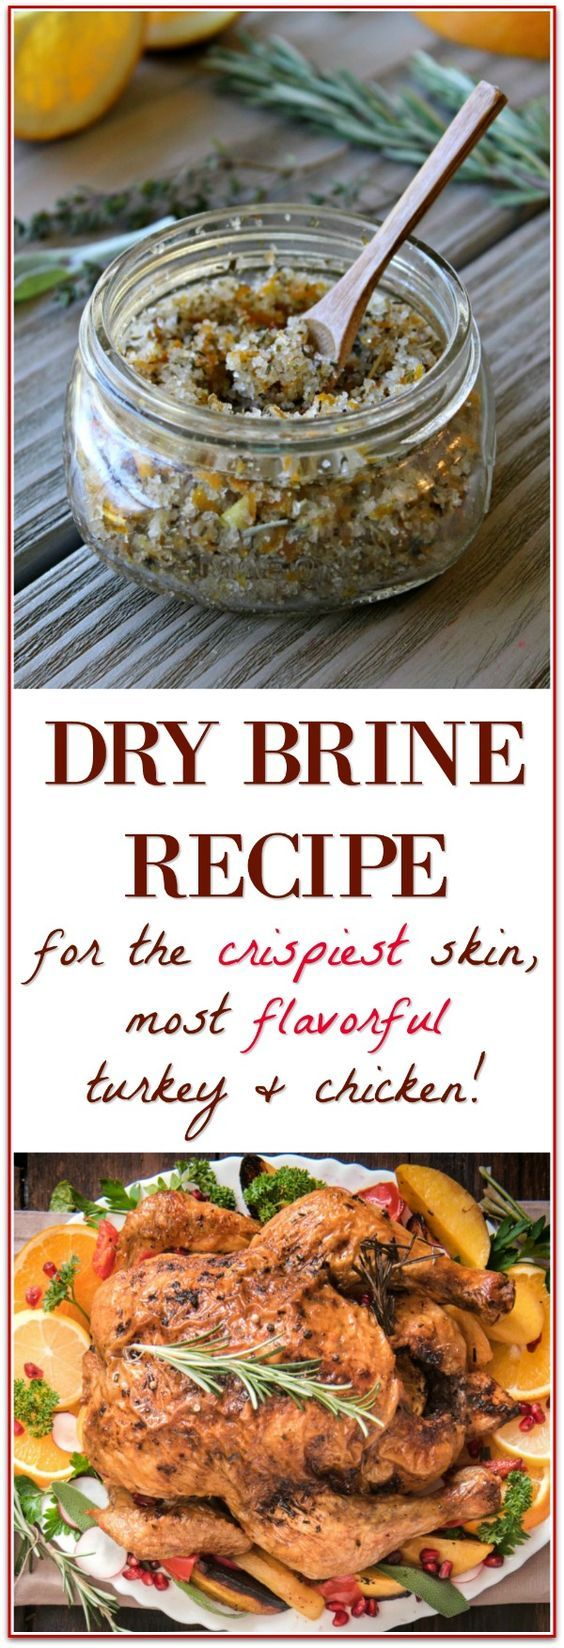 You've got to try this dry brine recipe - it makes the most flavorful and crispy skin turkey and chicken!